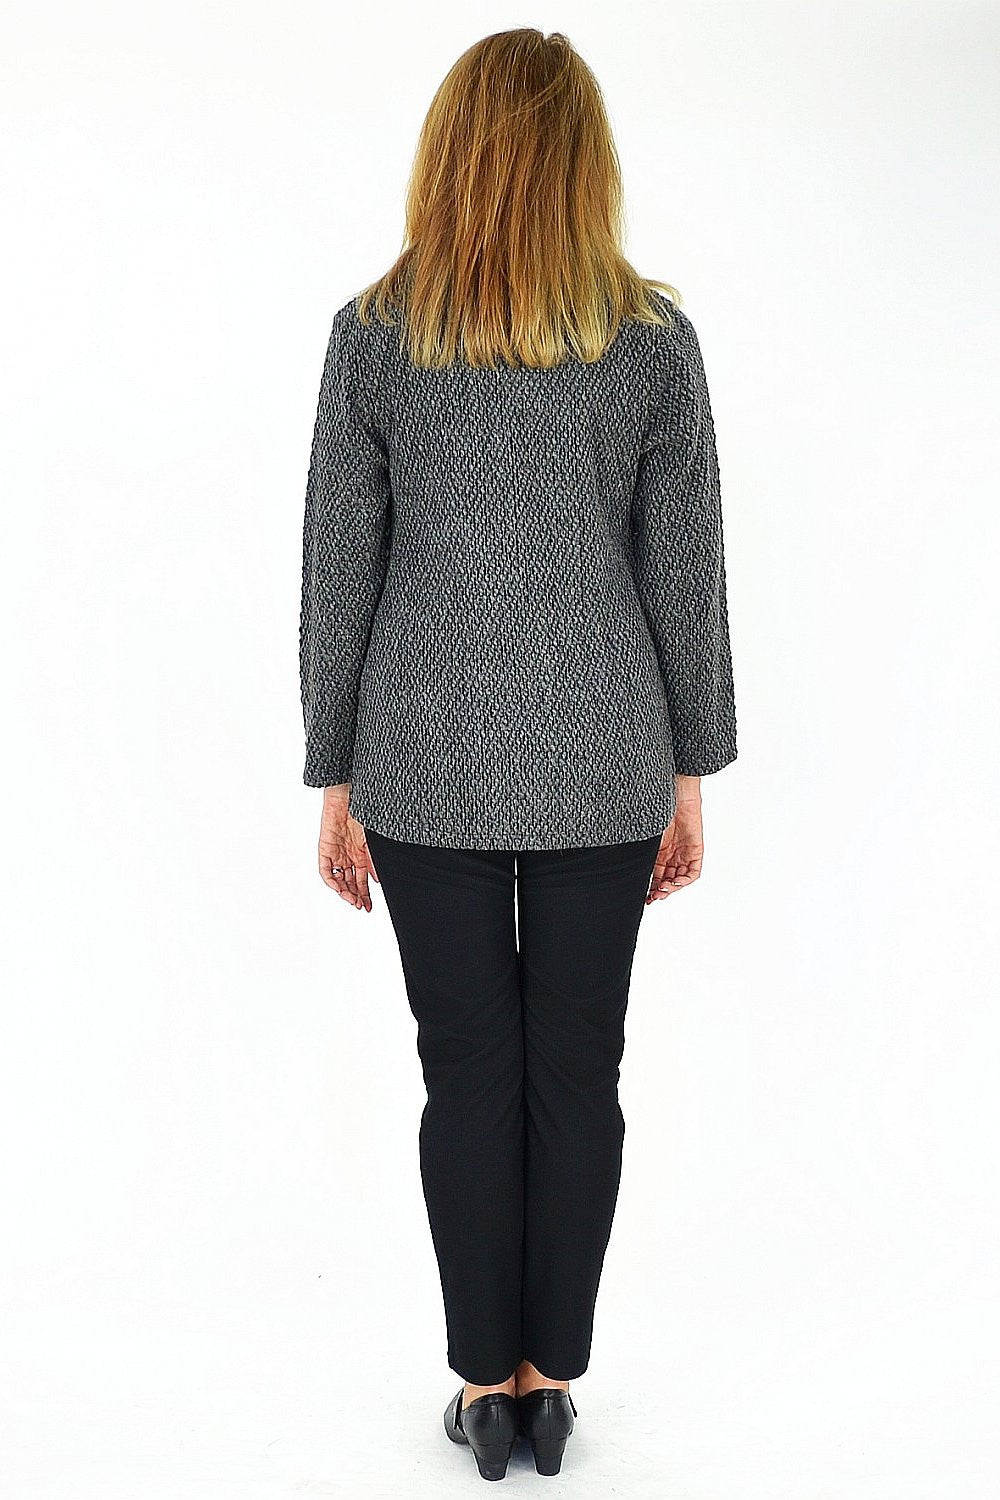 Grey Ava Jacket - at I Love Tunics @ www.ilovetunics.com = Number One! Tunics Destination